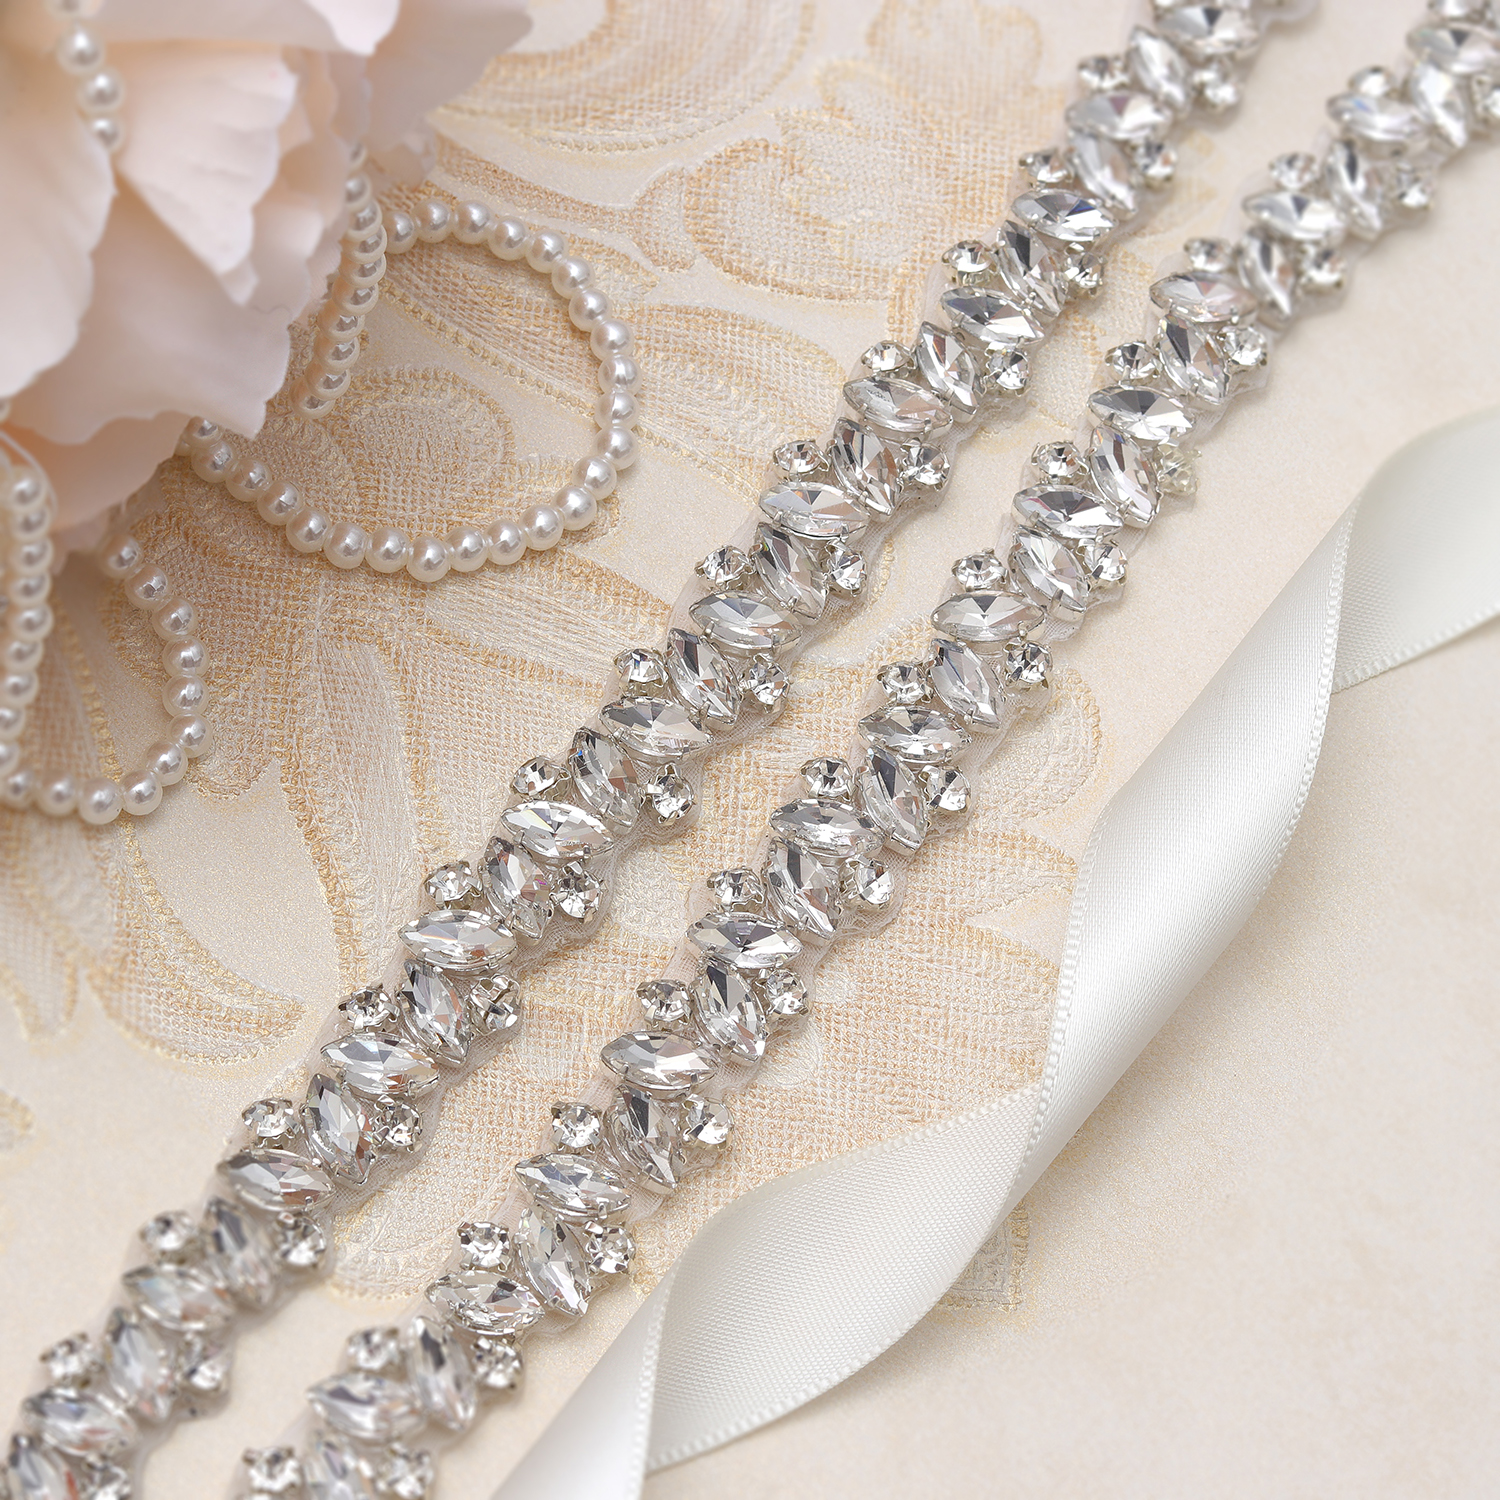 Diamond Wedding Belt MissRDress Gold Crystal Wedding Sash Rhinestones Bridal Sash Belt For Wedding Evening Dress JK863